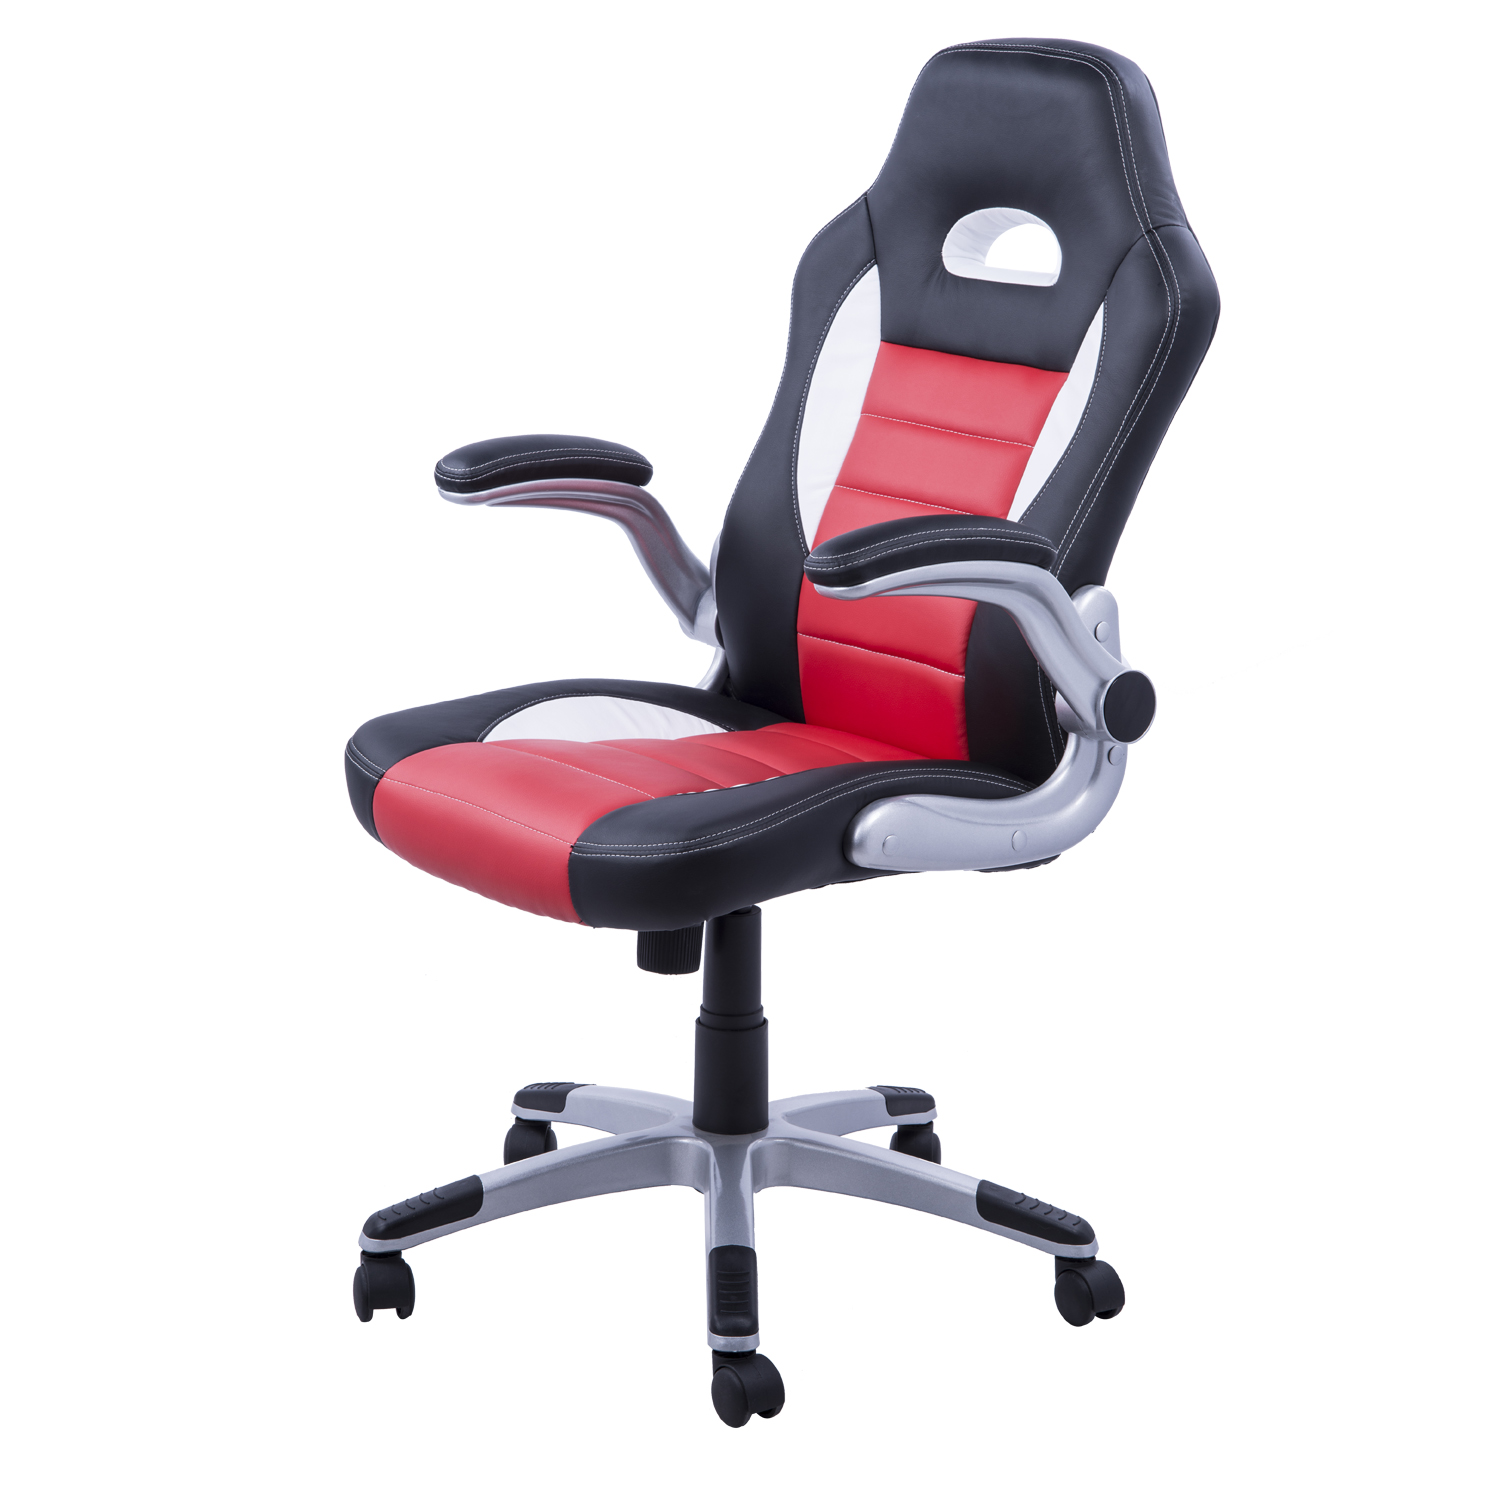 Sillones Para Escritorio Pc.Us 211 81 Homcom Racing Silla Oficina Ejecutiva Deportiva Silla Gaming Para Pc Sillon Estudio Direccion Giratoria In Office Chairs From Furniture On